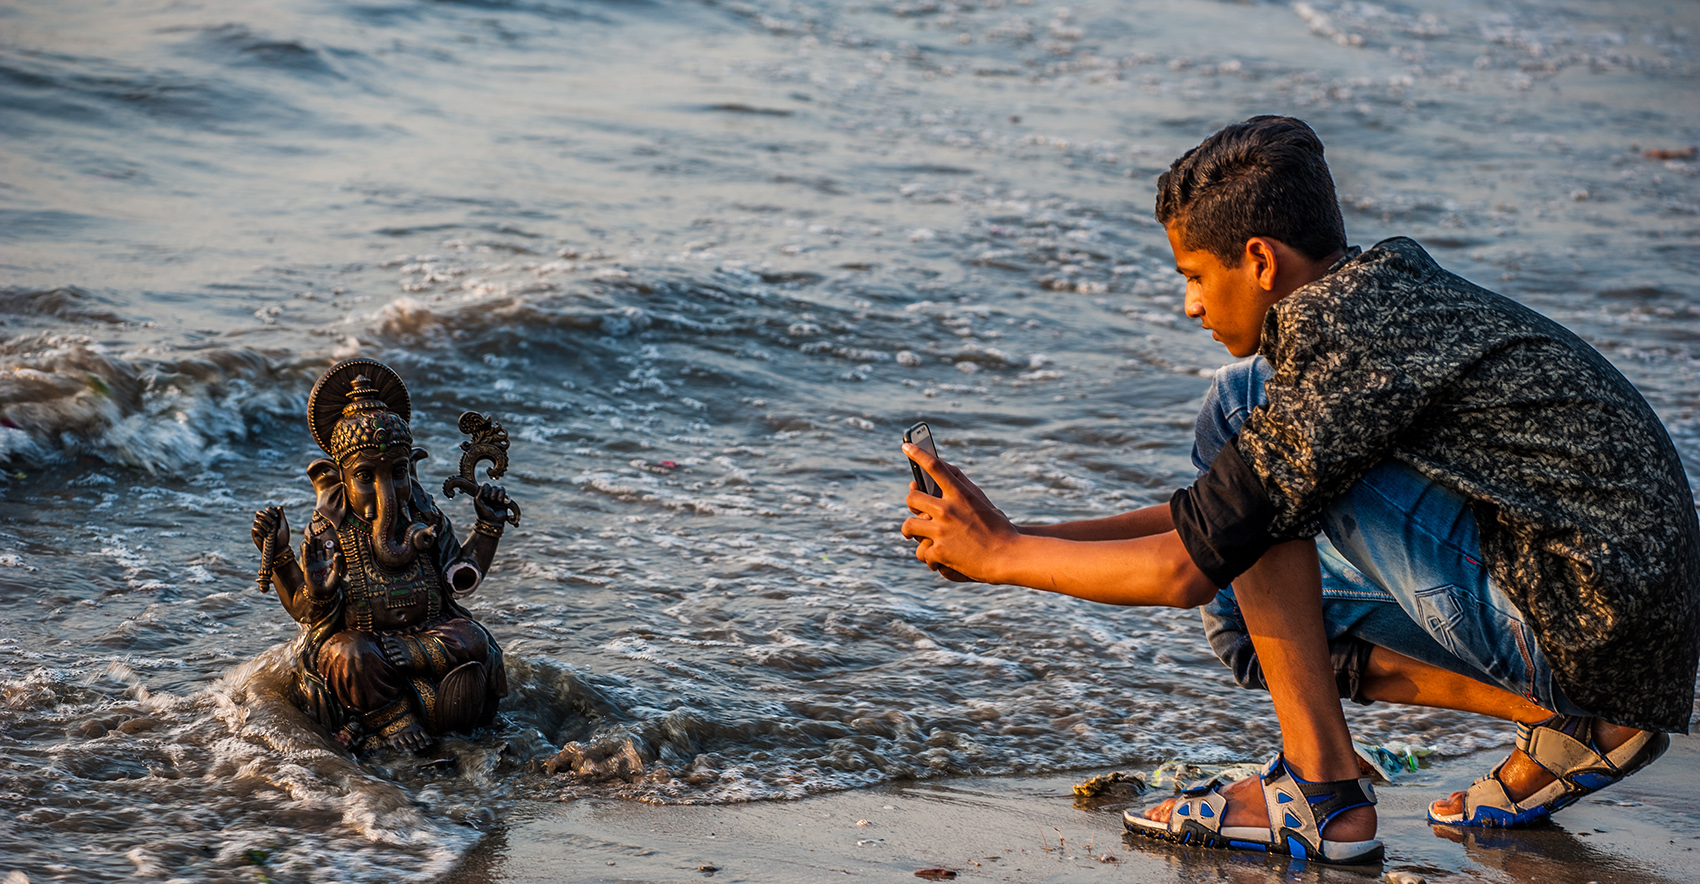 photo of a boy squatting on the shore taking a photo of a sea deity